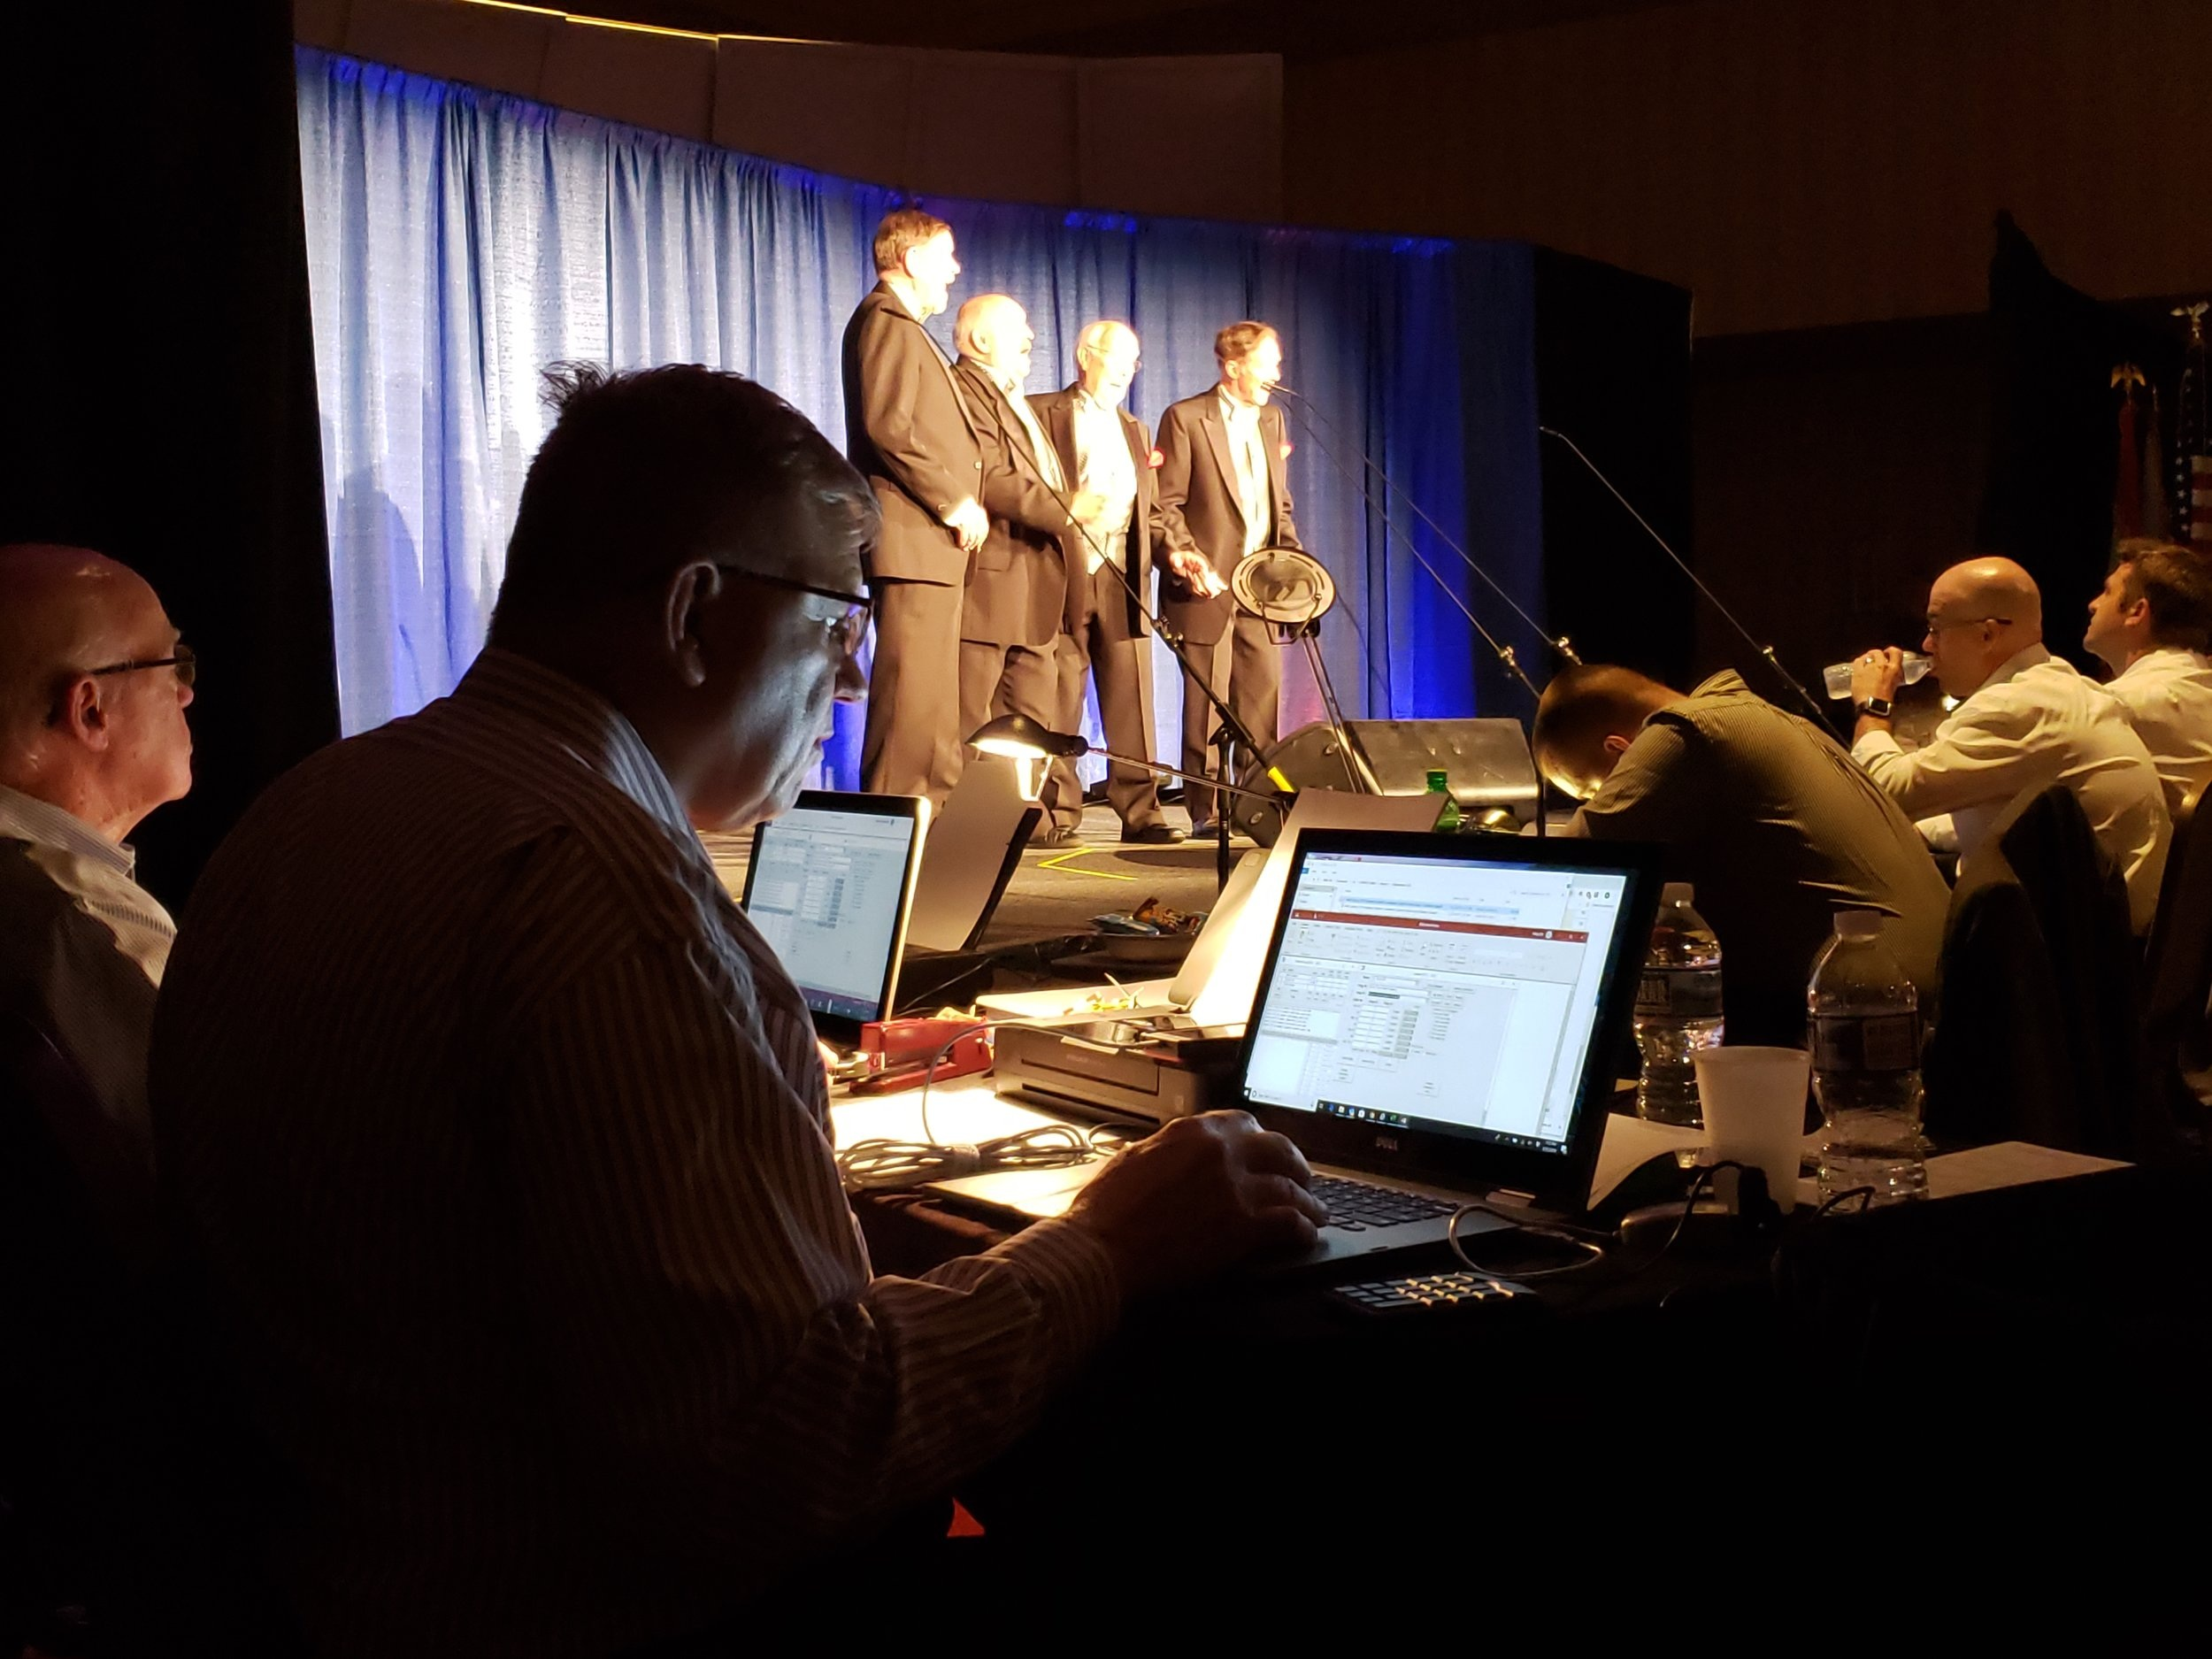 Behind the scenes of the judging and recording of the scores.